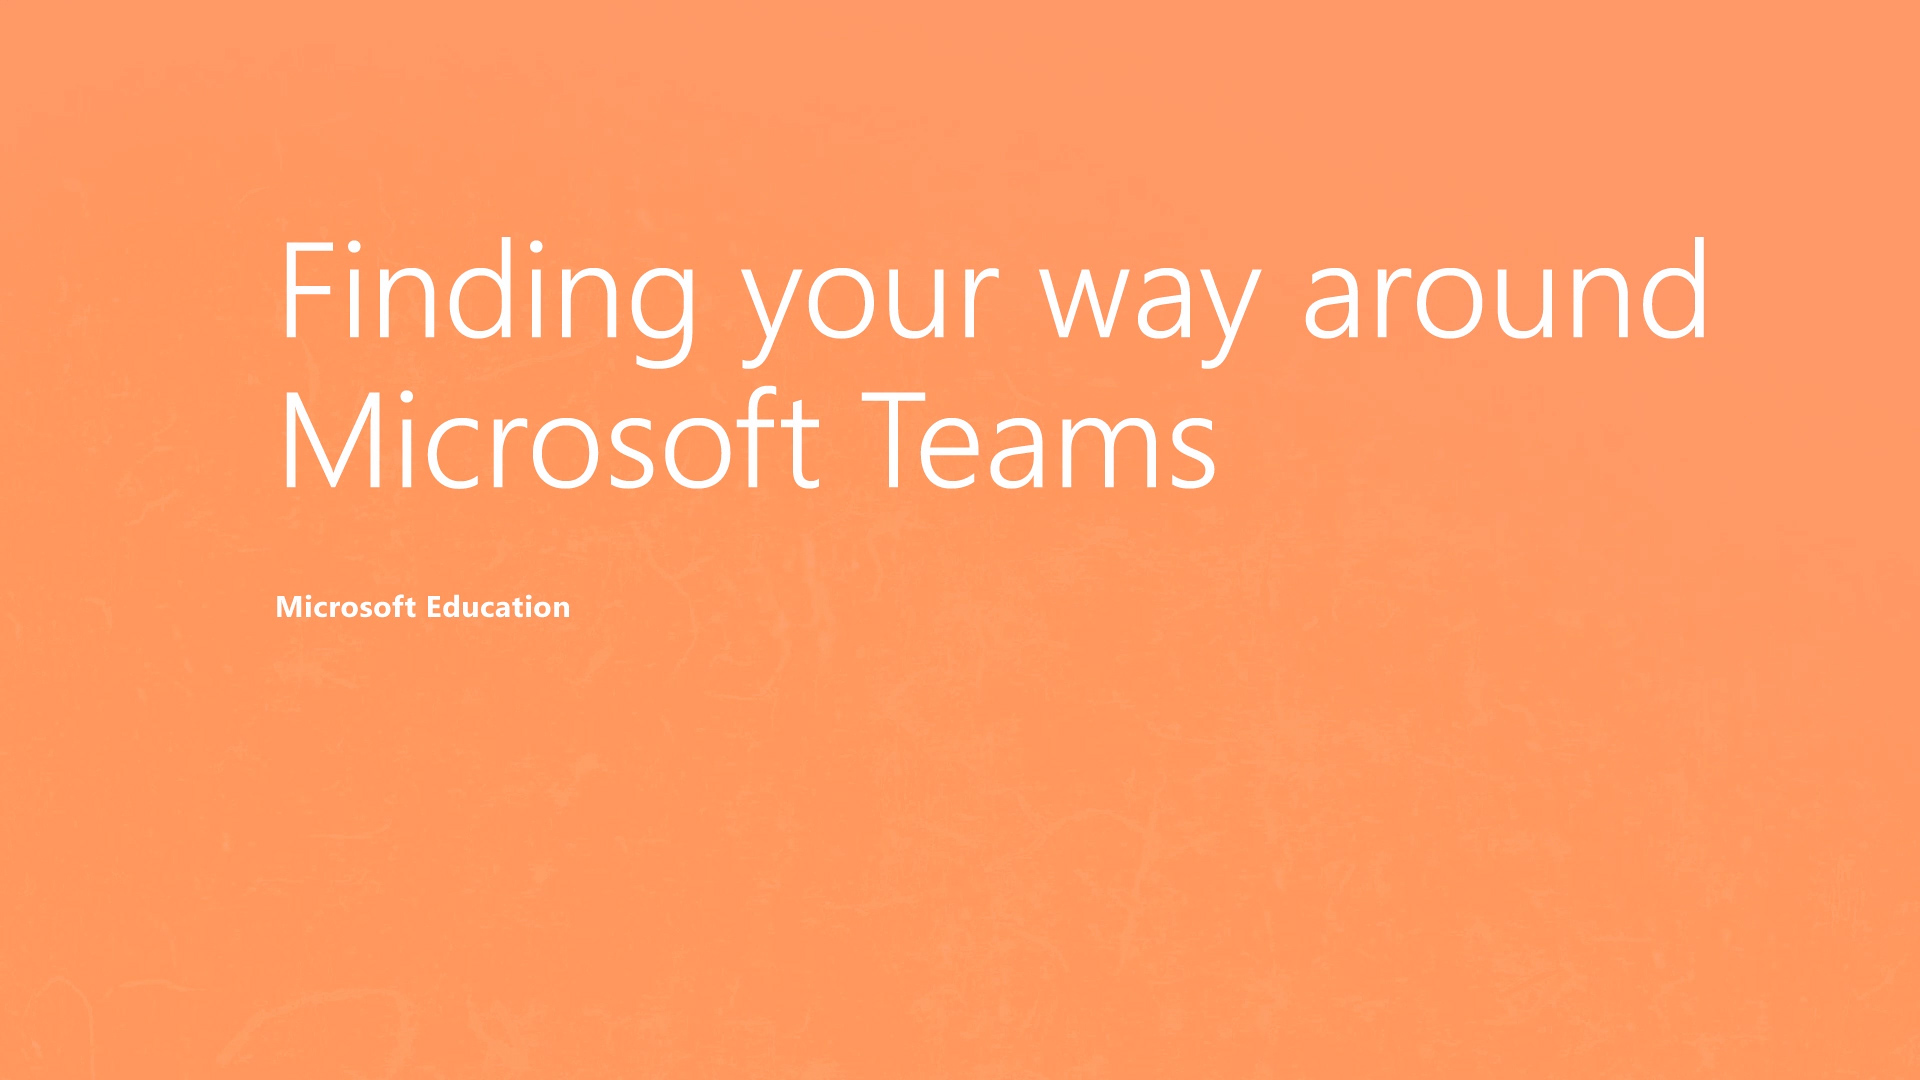 microsoft teams for education training videos and resources office